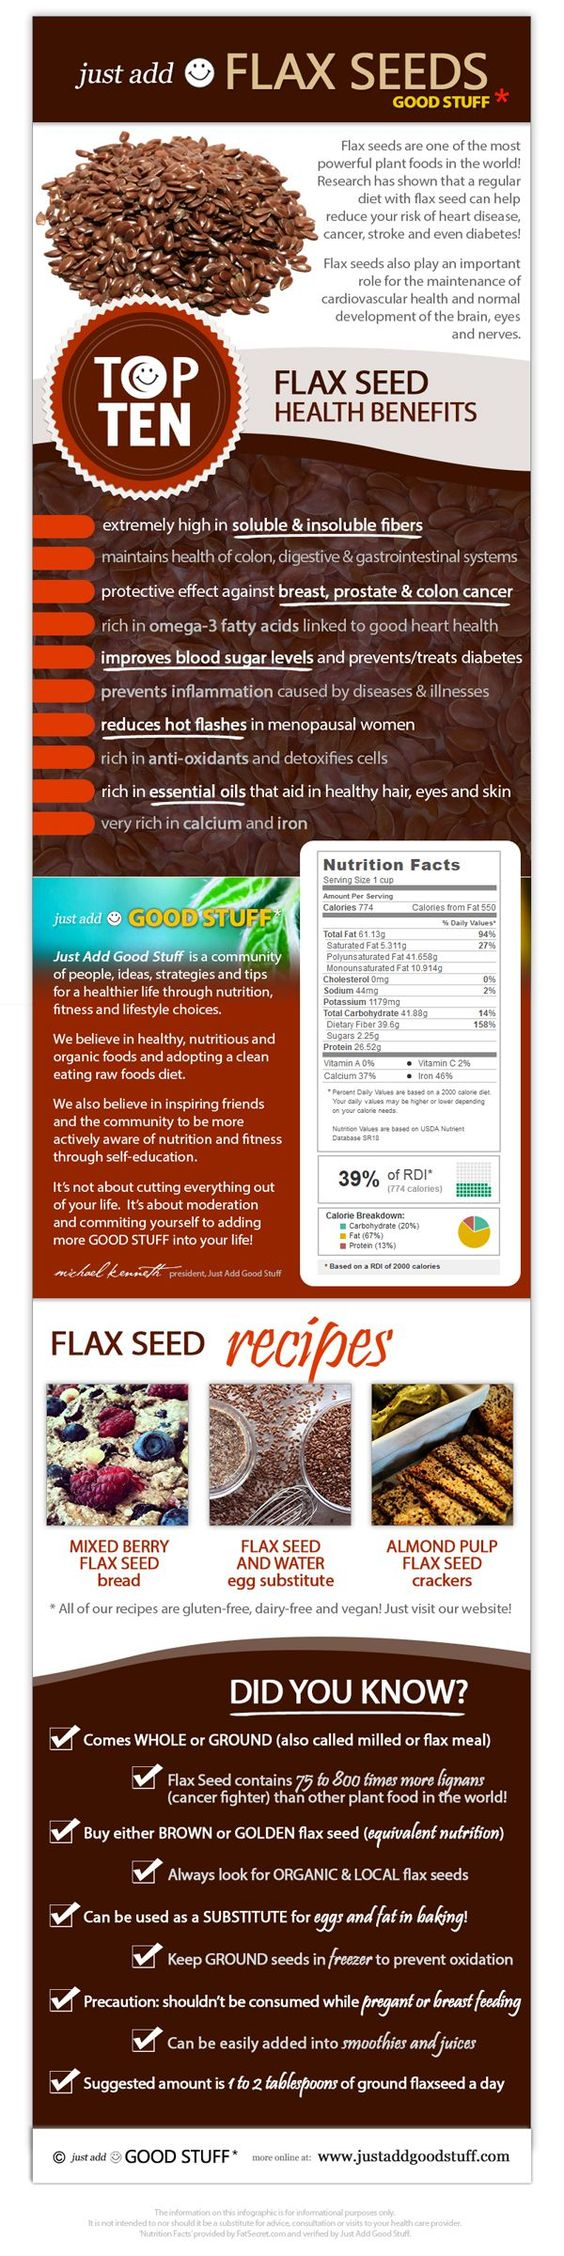 flax seeds health benefits